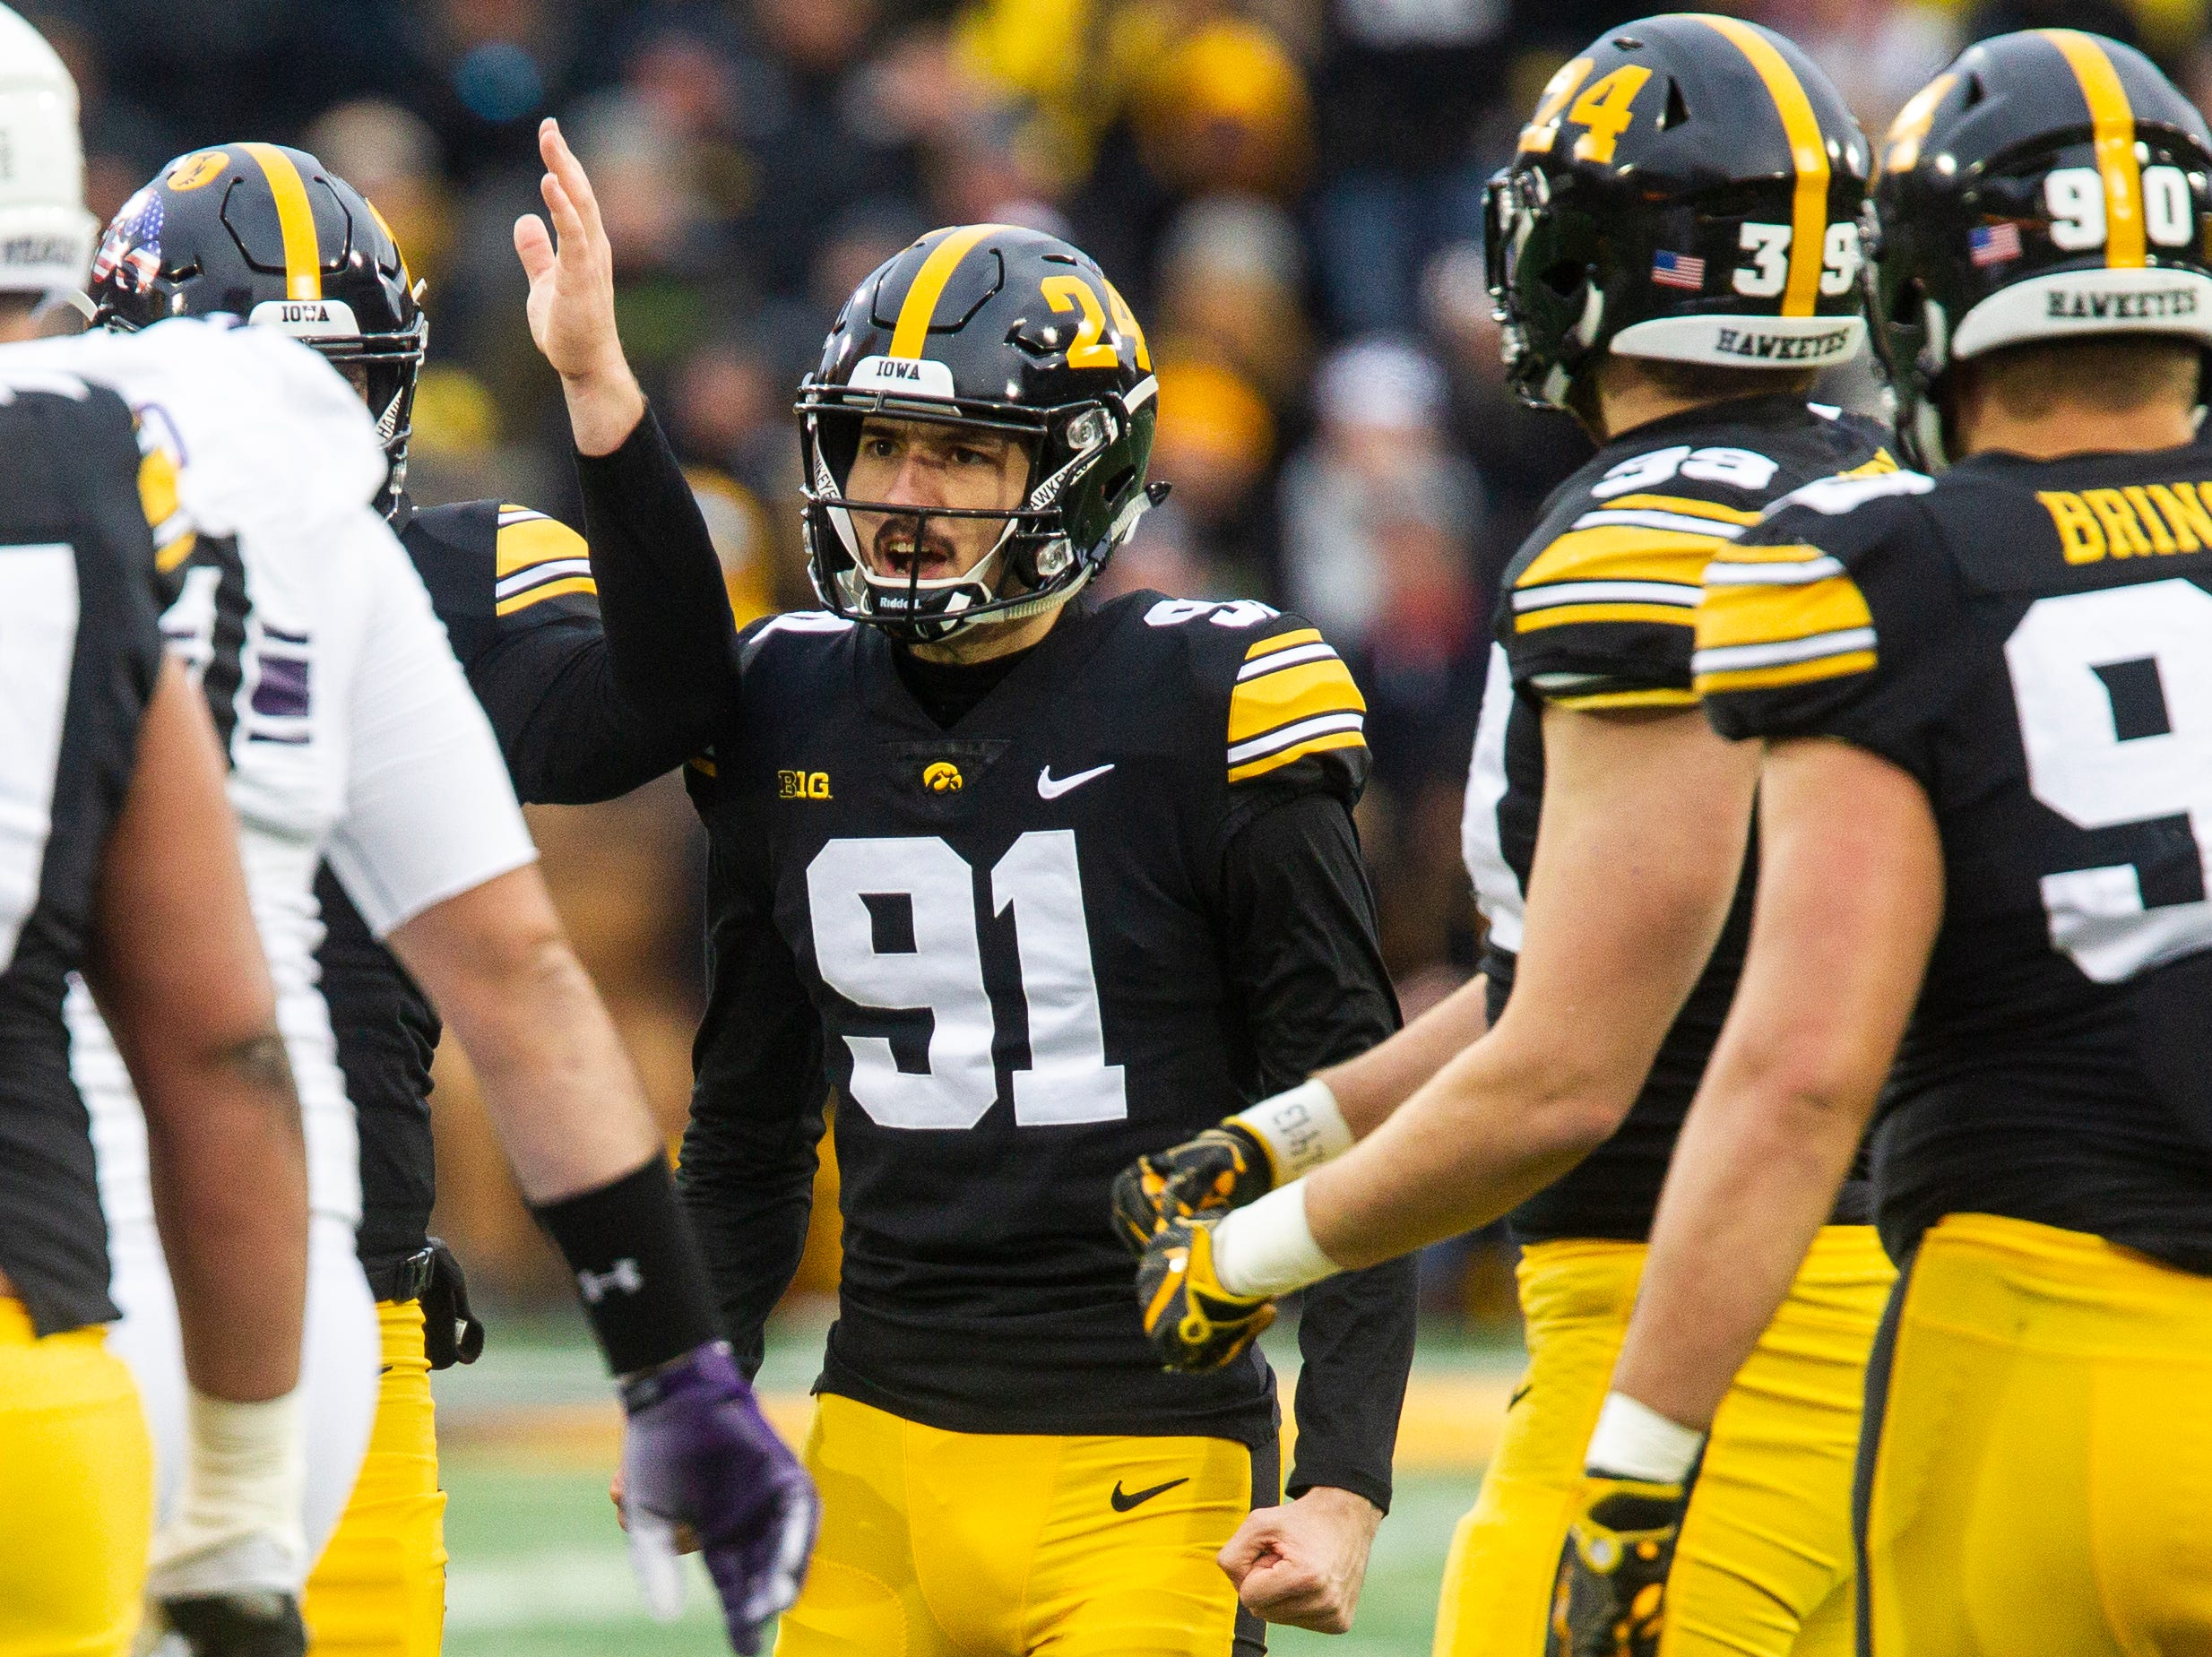 Iowa placekicker Miguel Recinos (91) celebrates after making a field goal during a Big Ten Conference football game on Saturday, Nov. 10, 2018, at Kinnick Stadium in Iowa City.